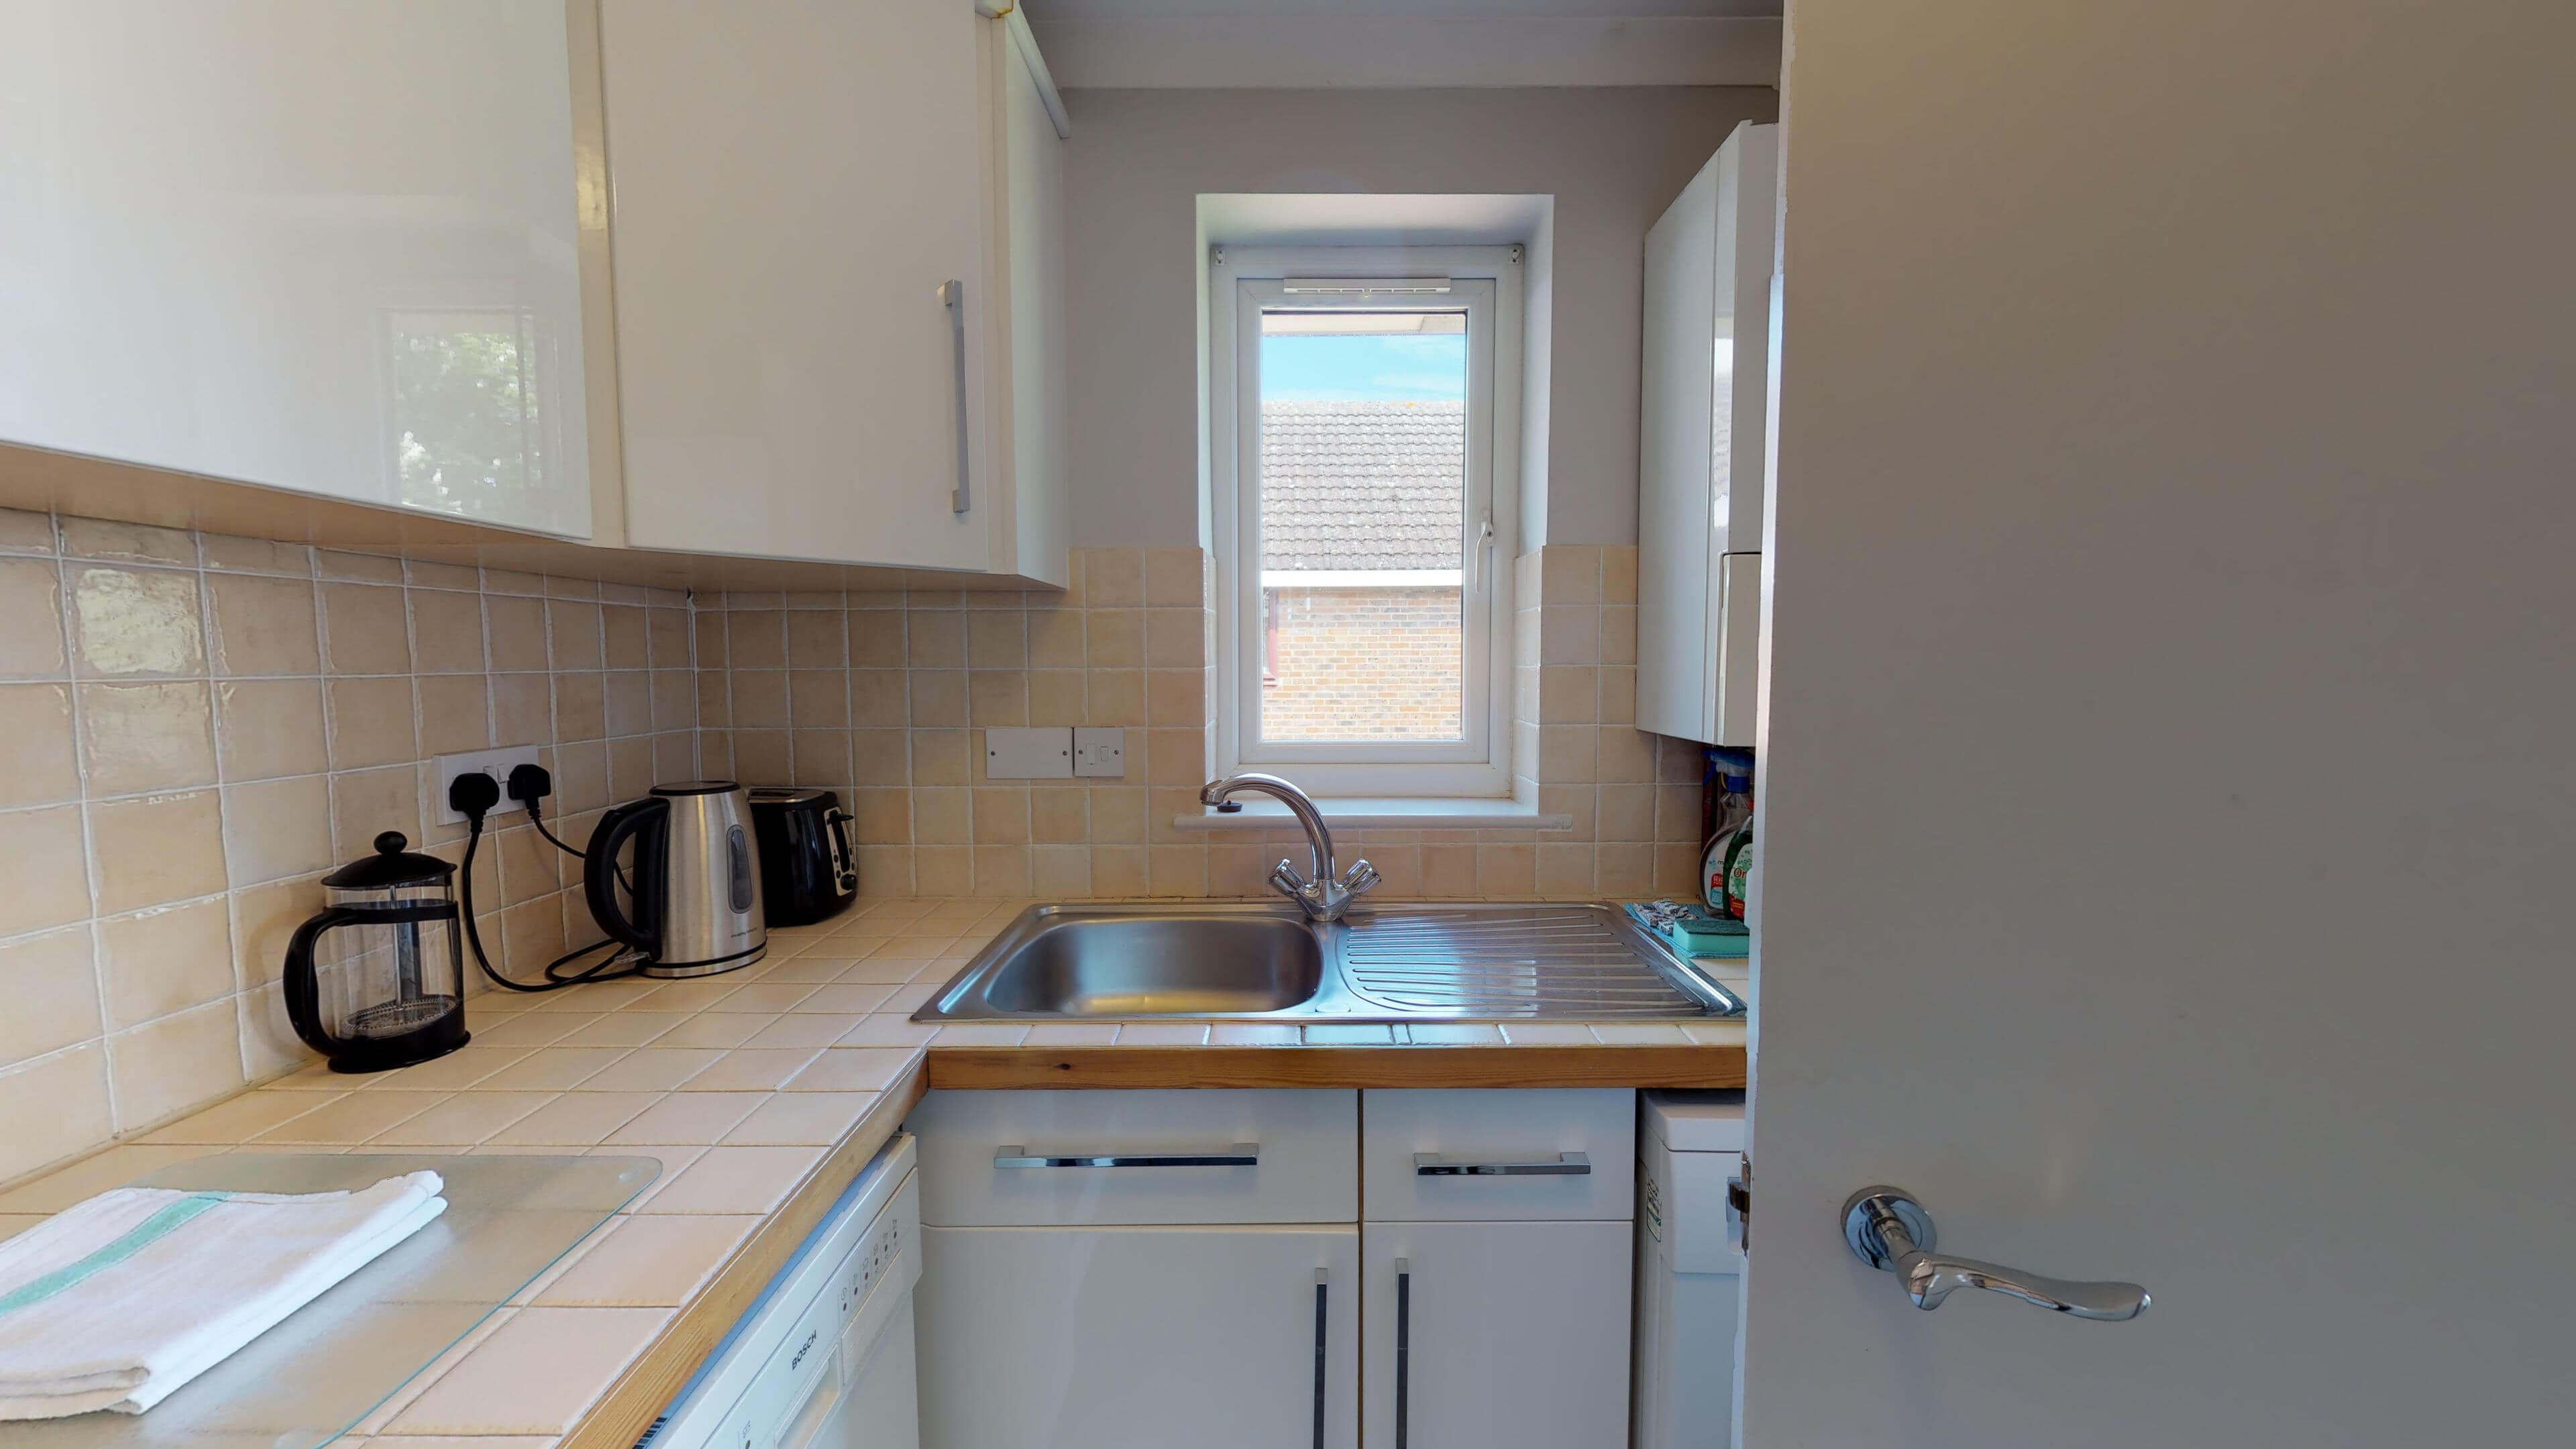 Short Stay Oxford The Firs Apartment 05232019 064726